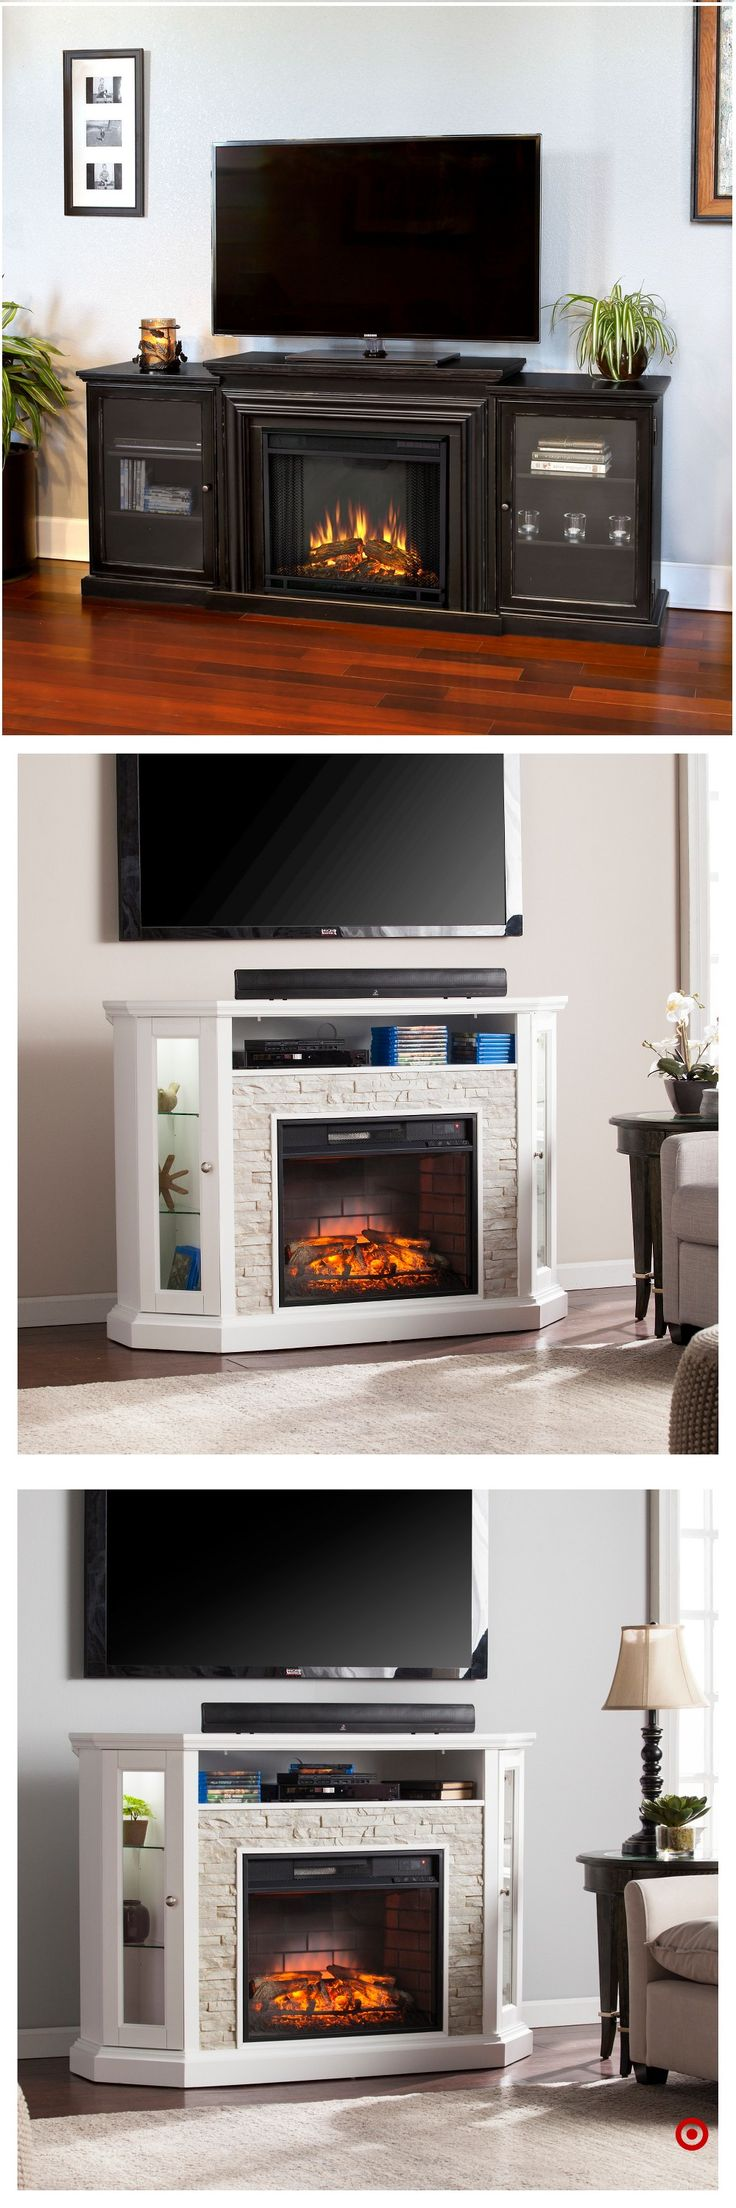 Shop Target for tv/media stand fireplace you will love at great low prices. Free shipping on all orders or free same-day pick-up in store.